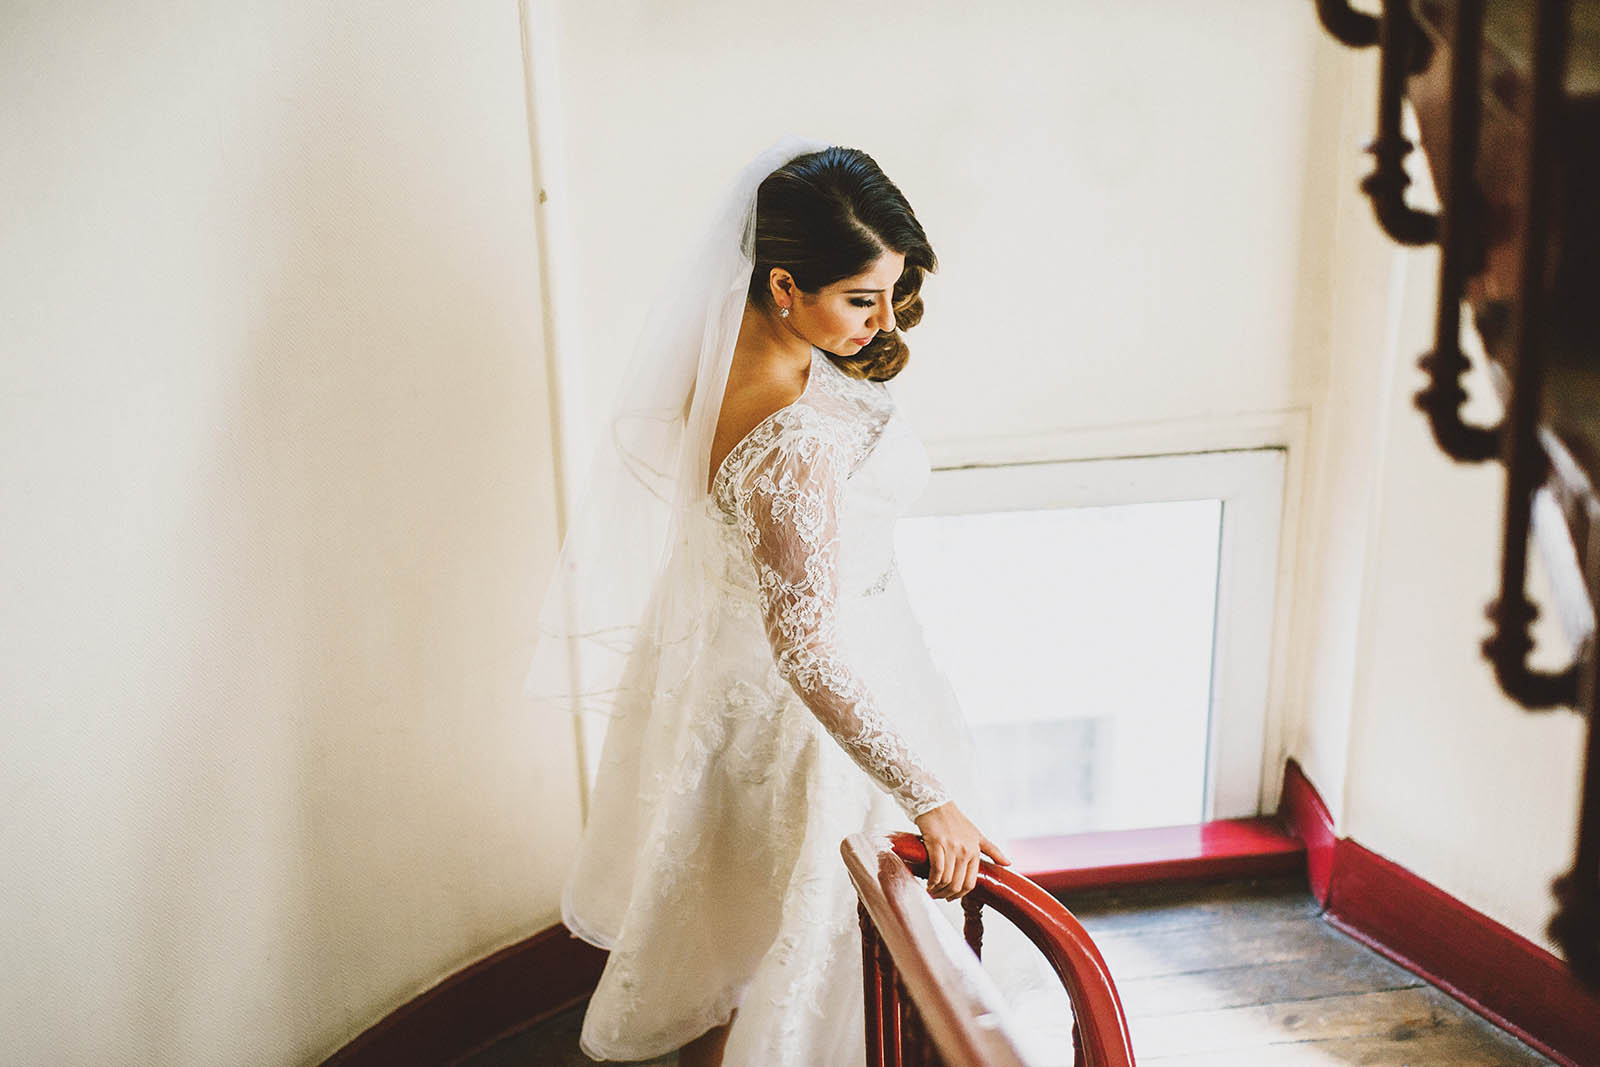 Bride heading to the First Look | Springtime Paris Elopement at Parc des Buttes Chaumont